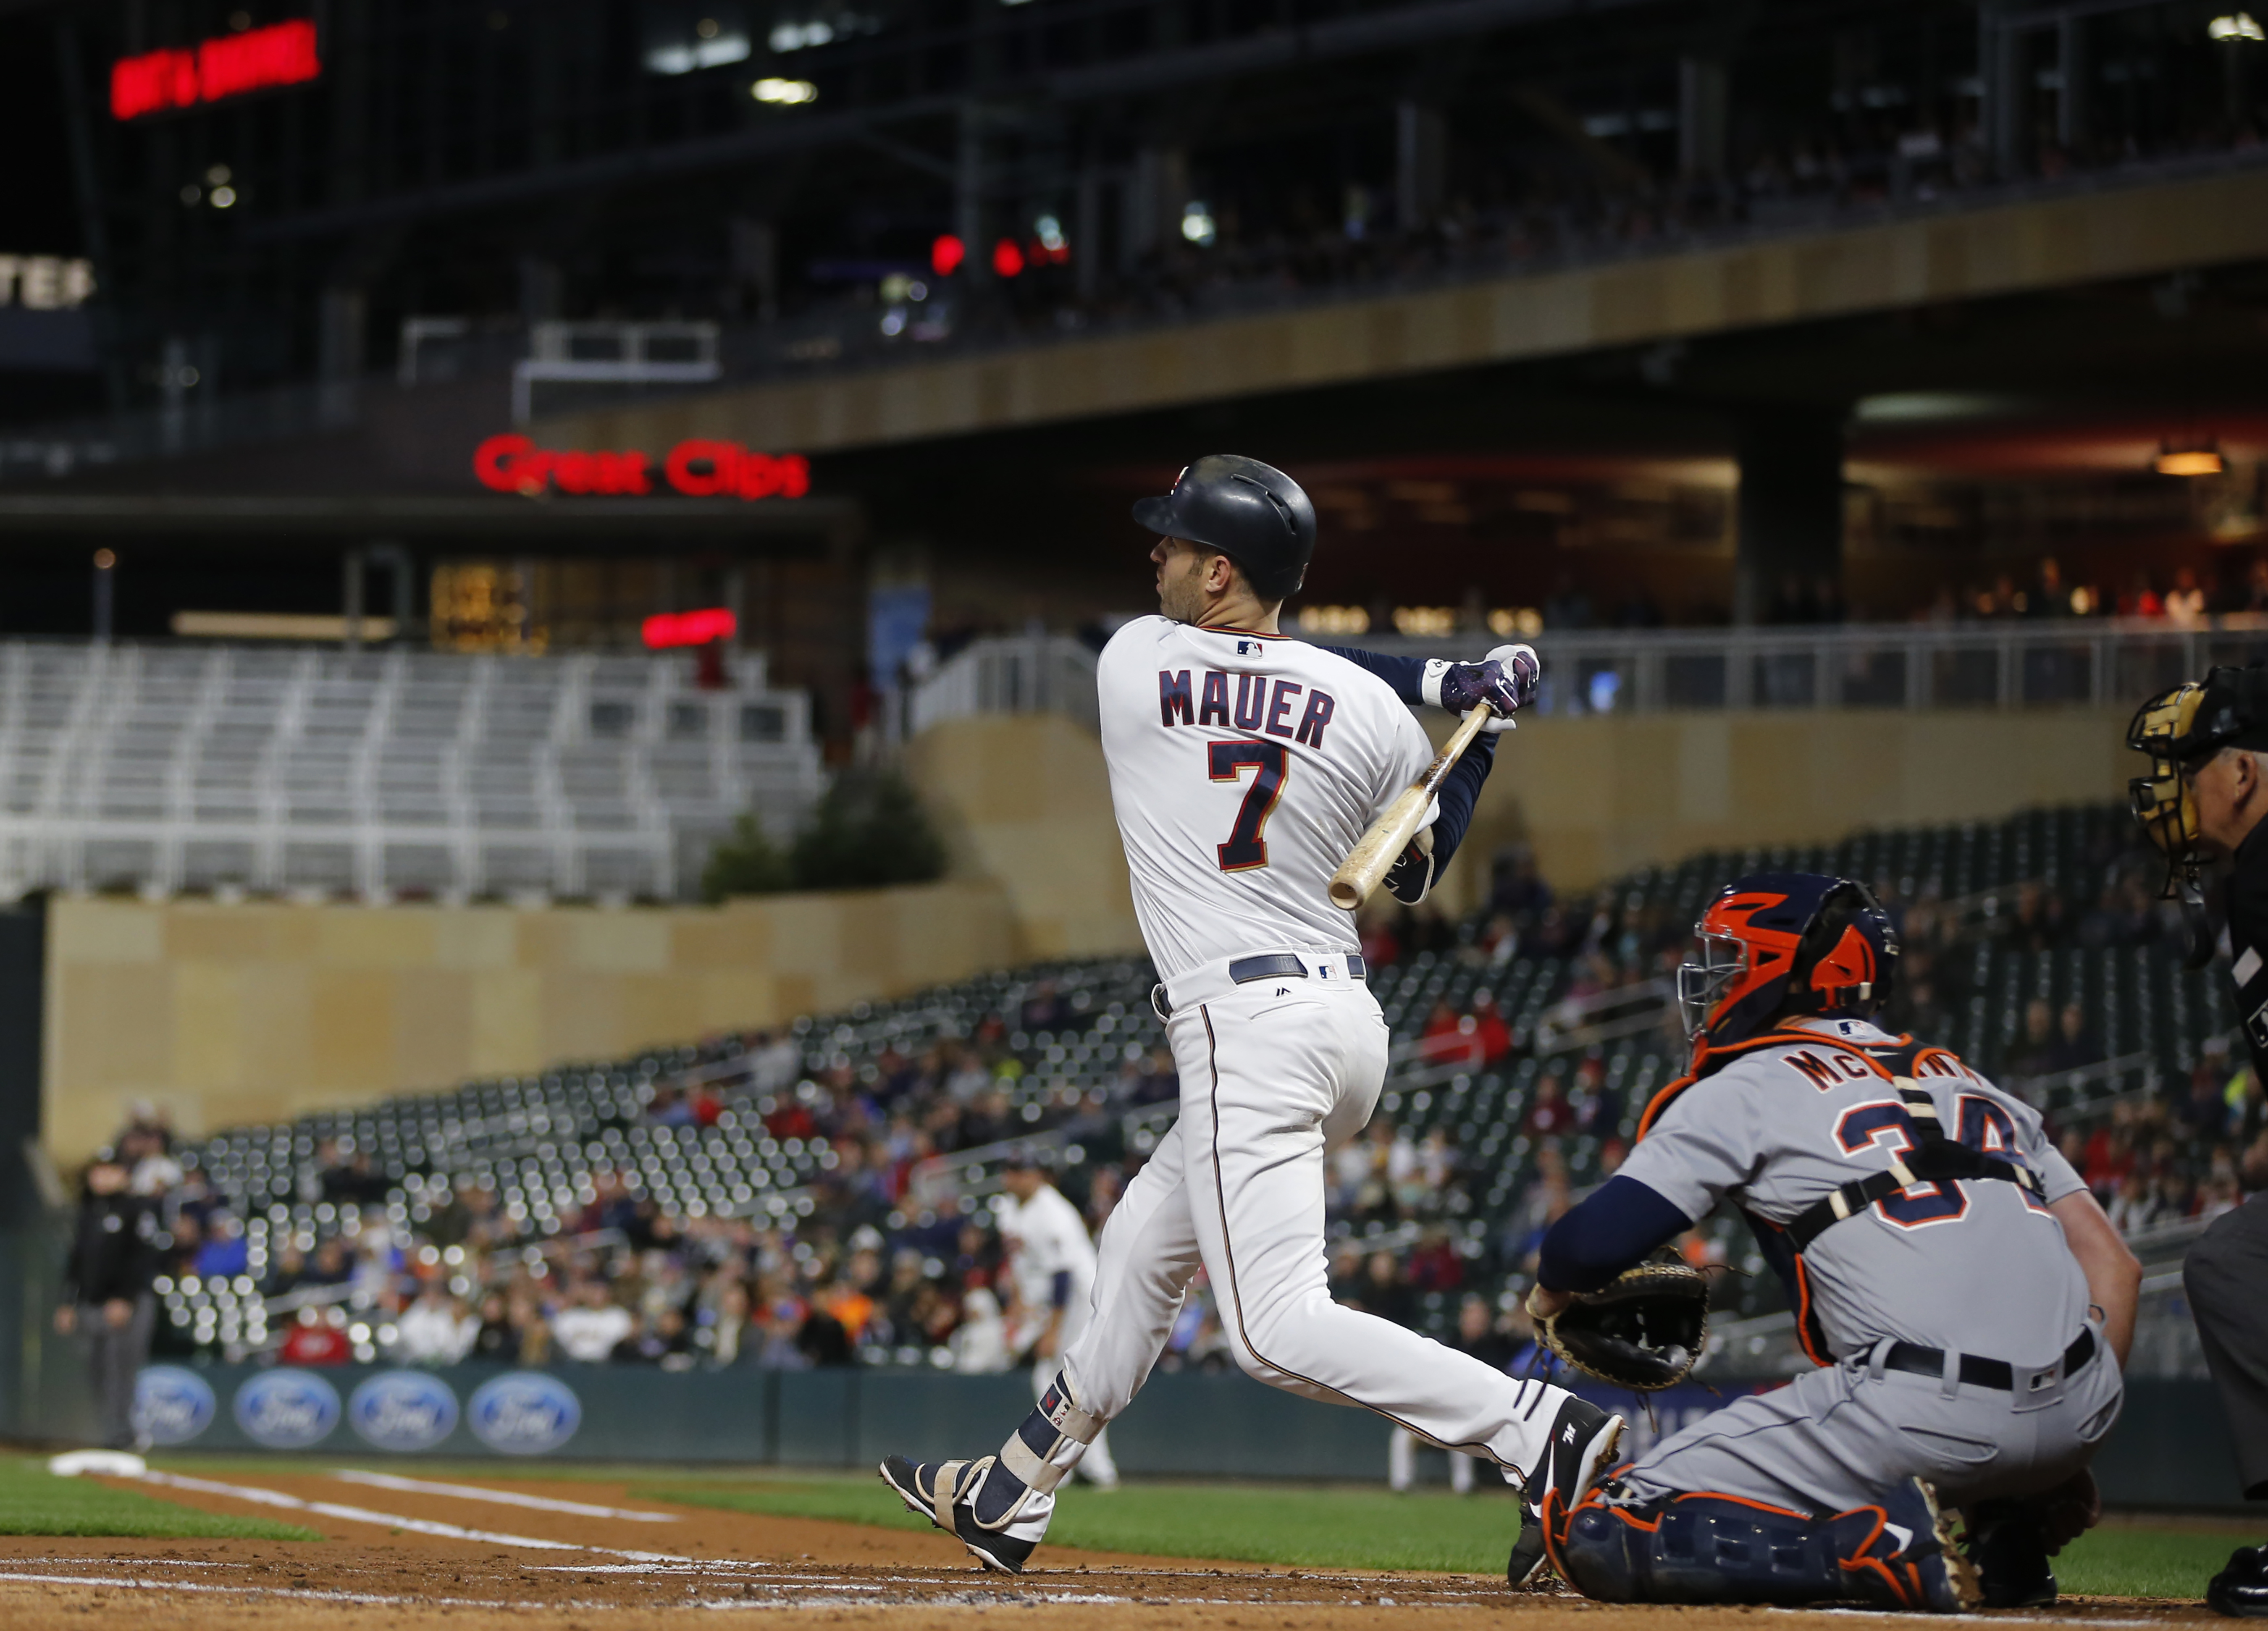 Castro's hit starts rally, leads Tigers past Twins 4-2